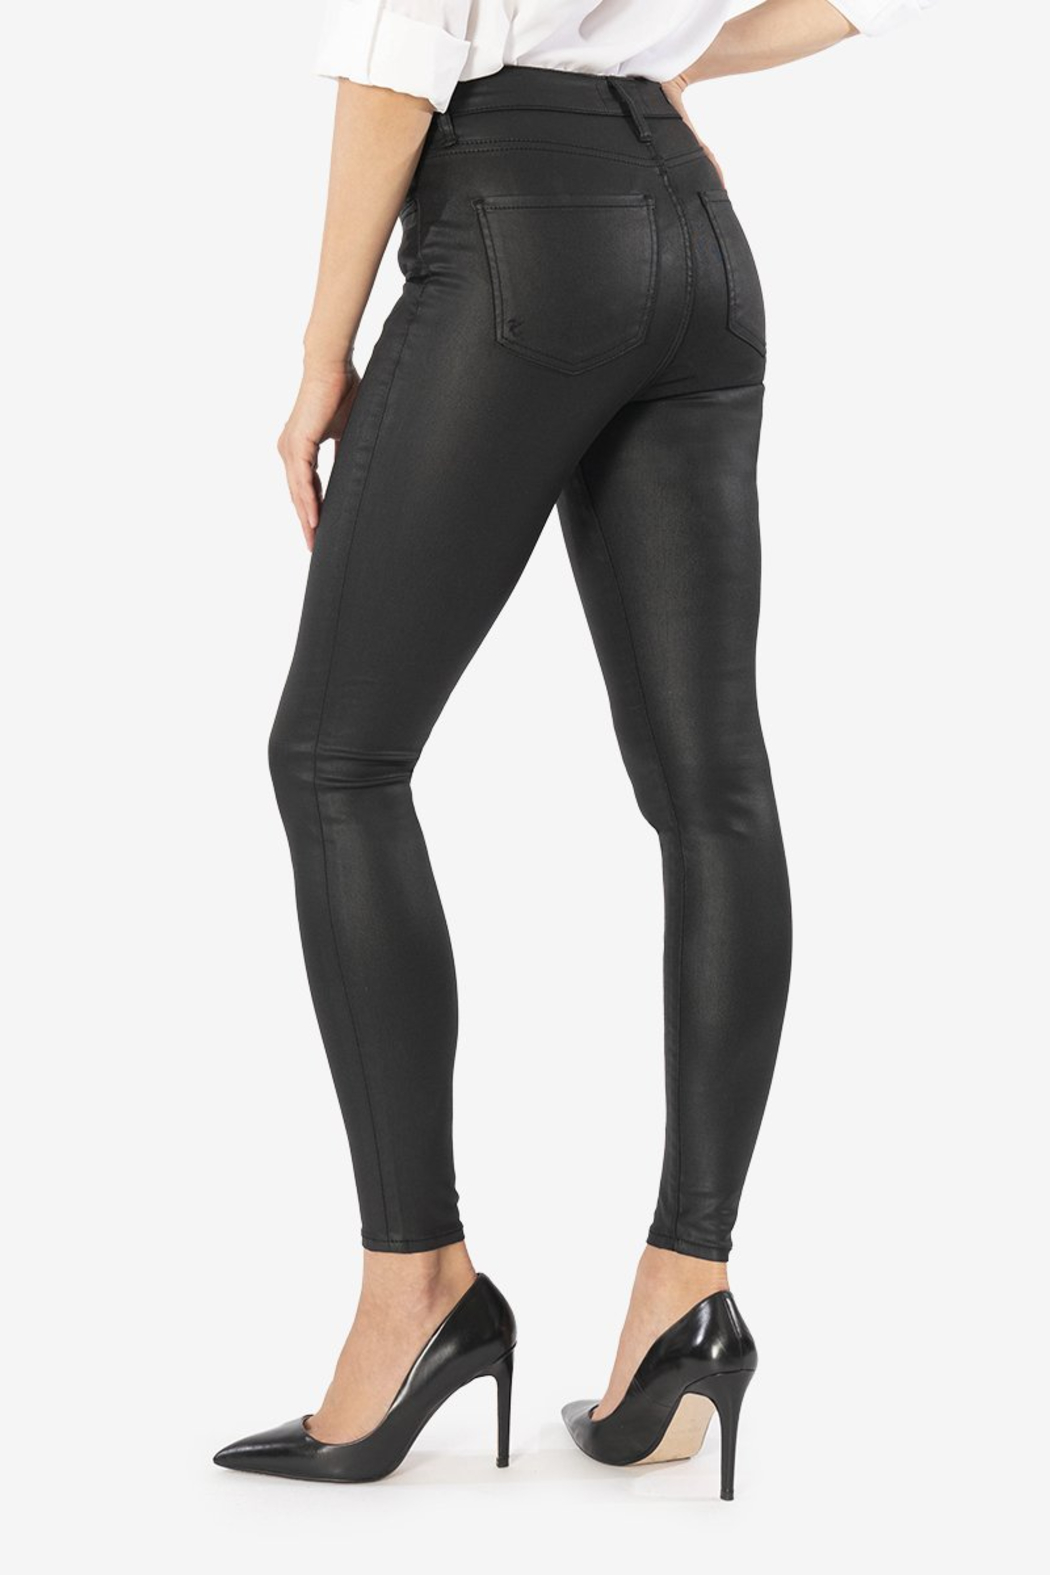 Kut from the Kloth Mia H/R Pleather Skinny - Front Full Image